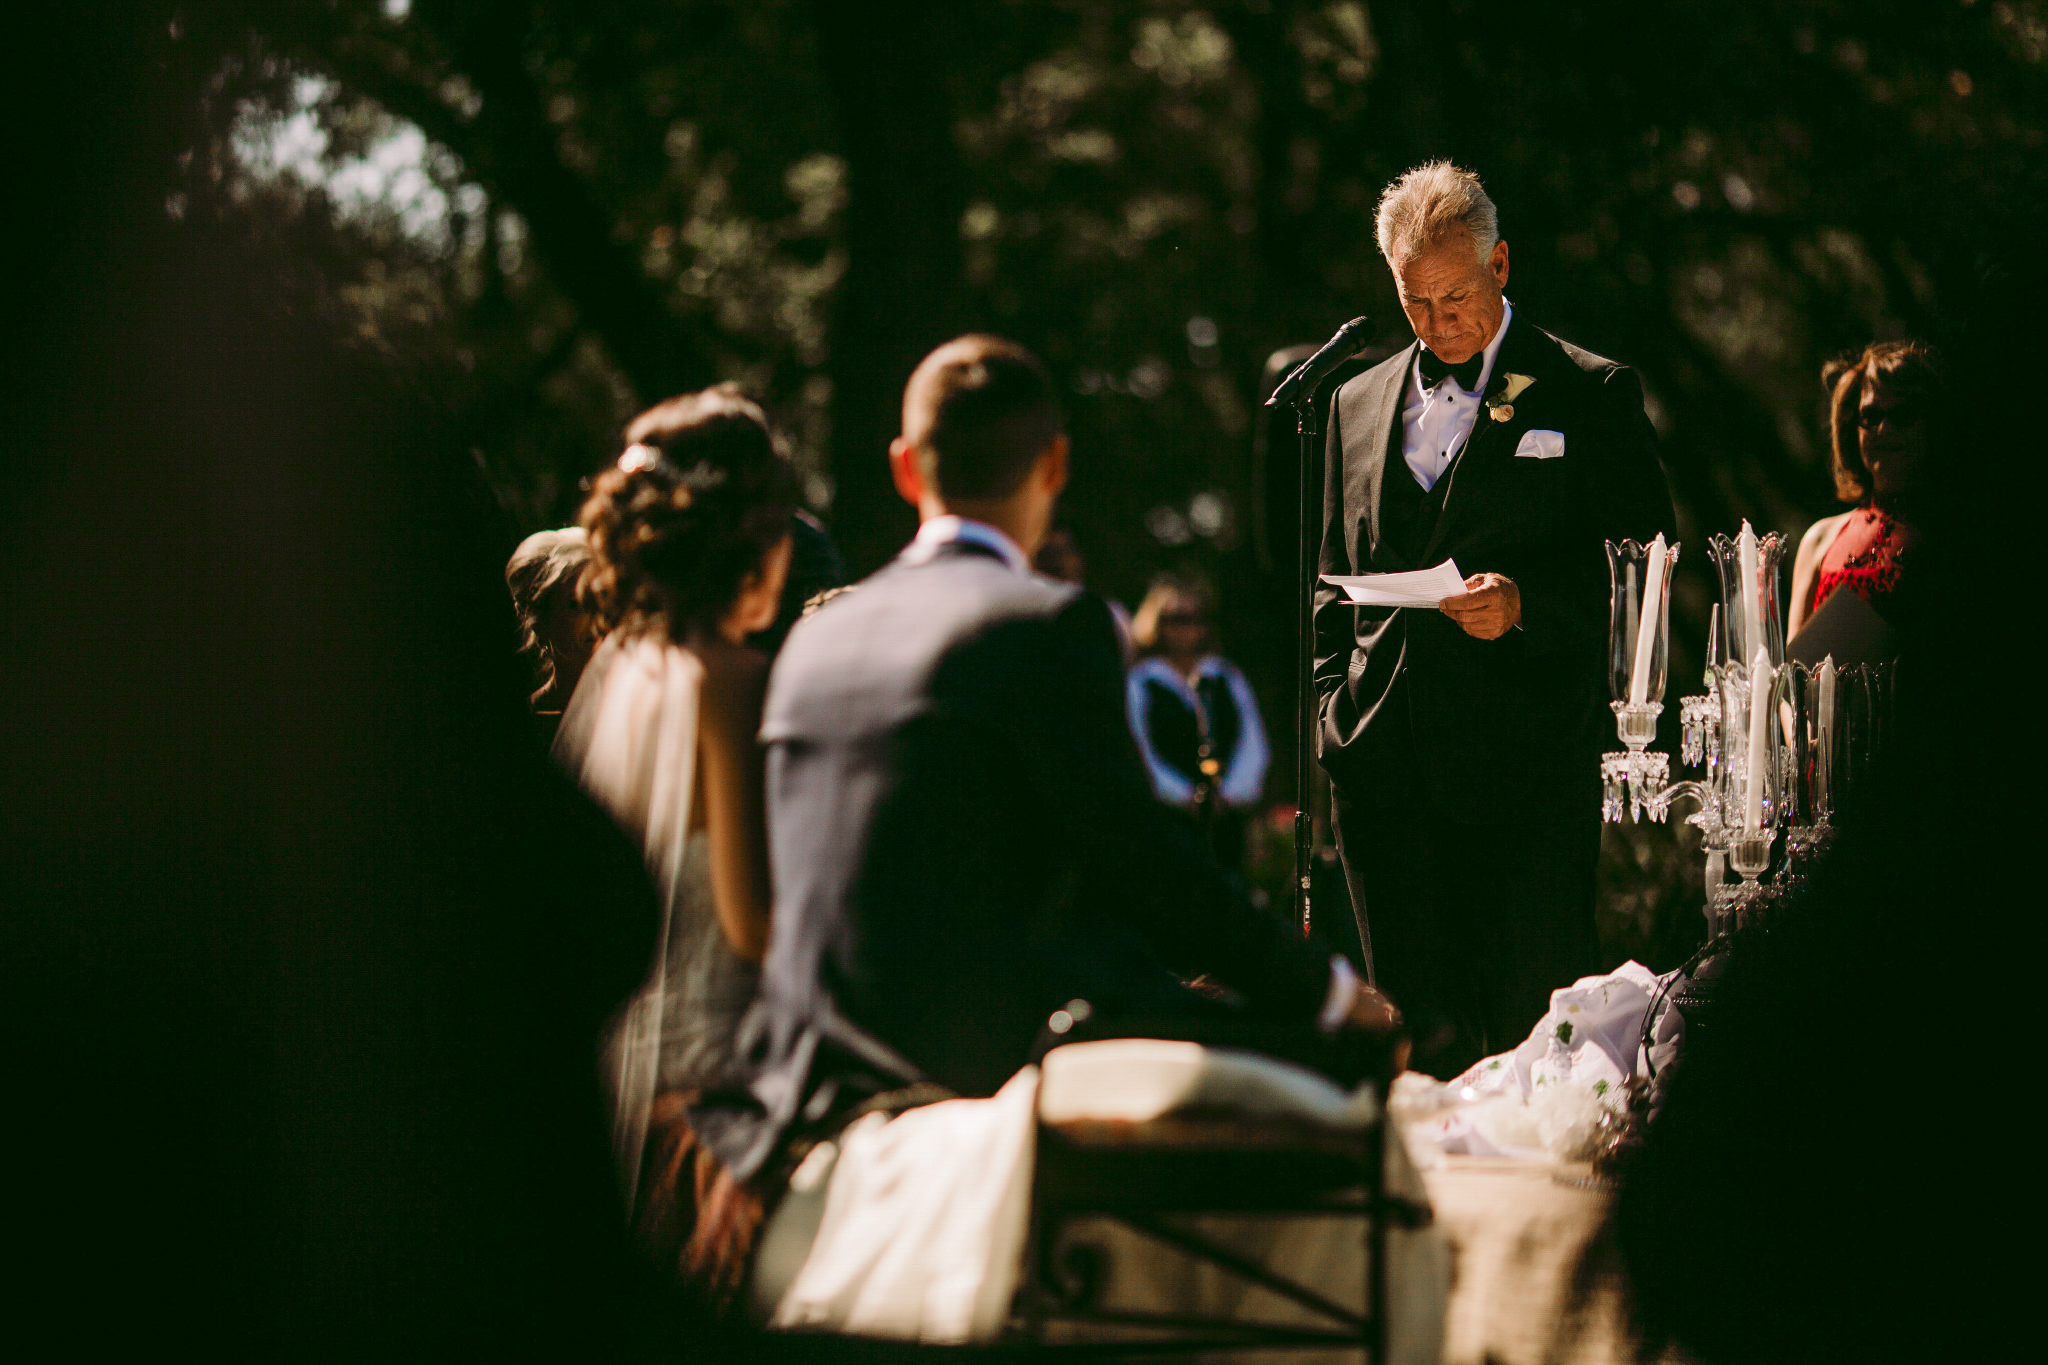 san diego wedding   photographer | man in suit in front of crowd looking down at piece of   paper